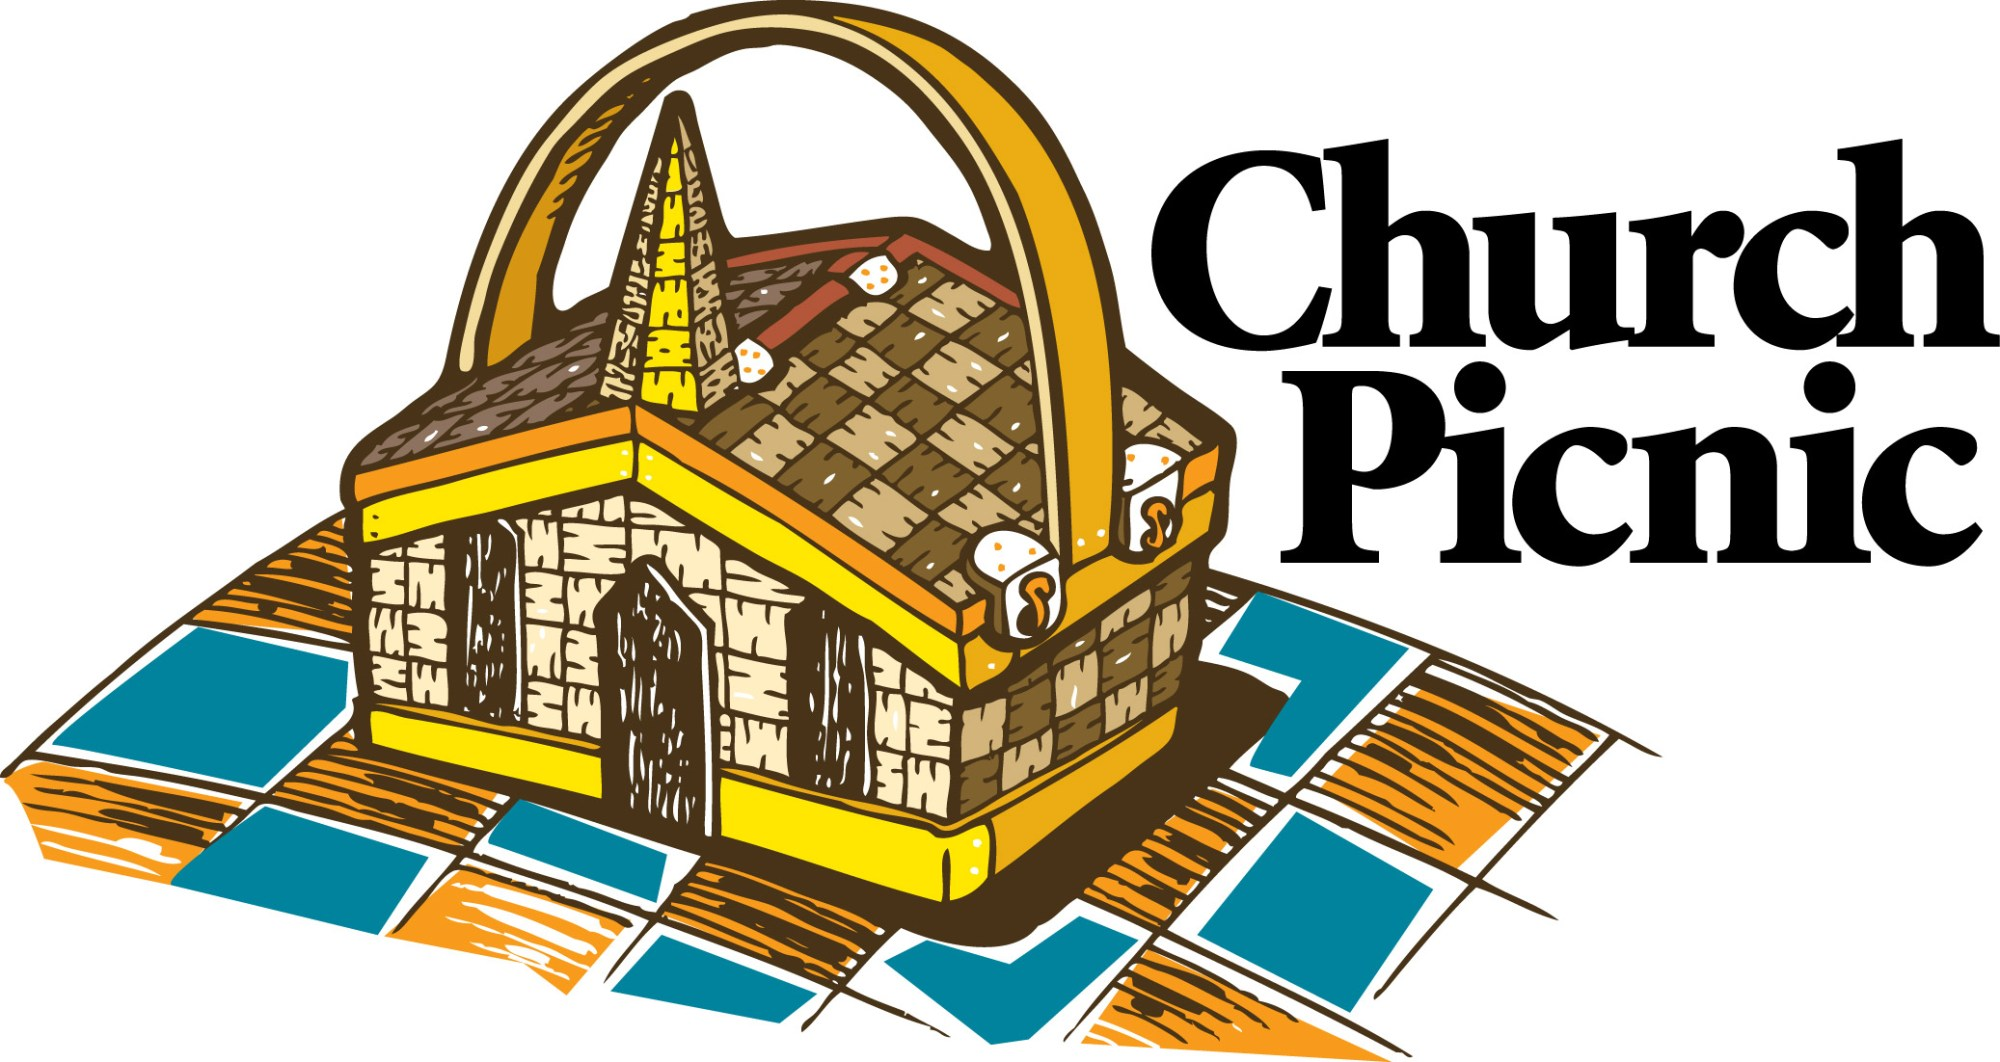 hight resolution of church picnic clipart free clip art images